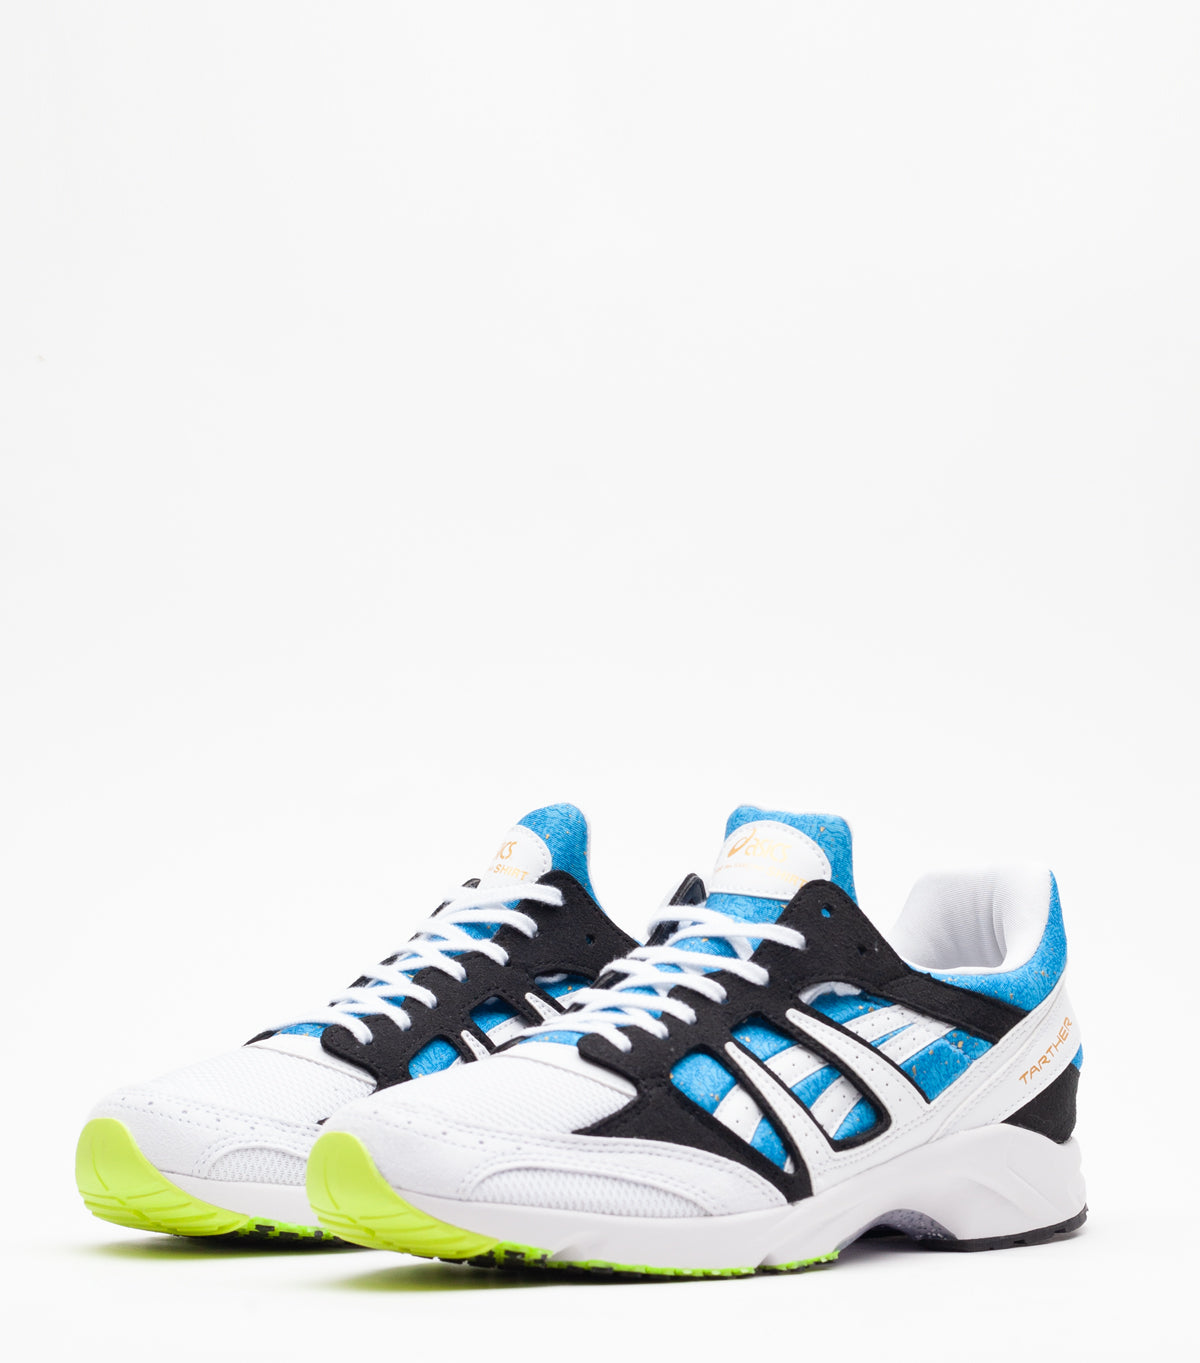 REEBOK | REEBOK PREMIER ROAD MODERN DASH BLUE | SOMEWHERE®